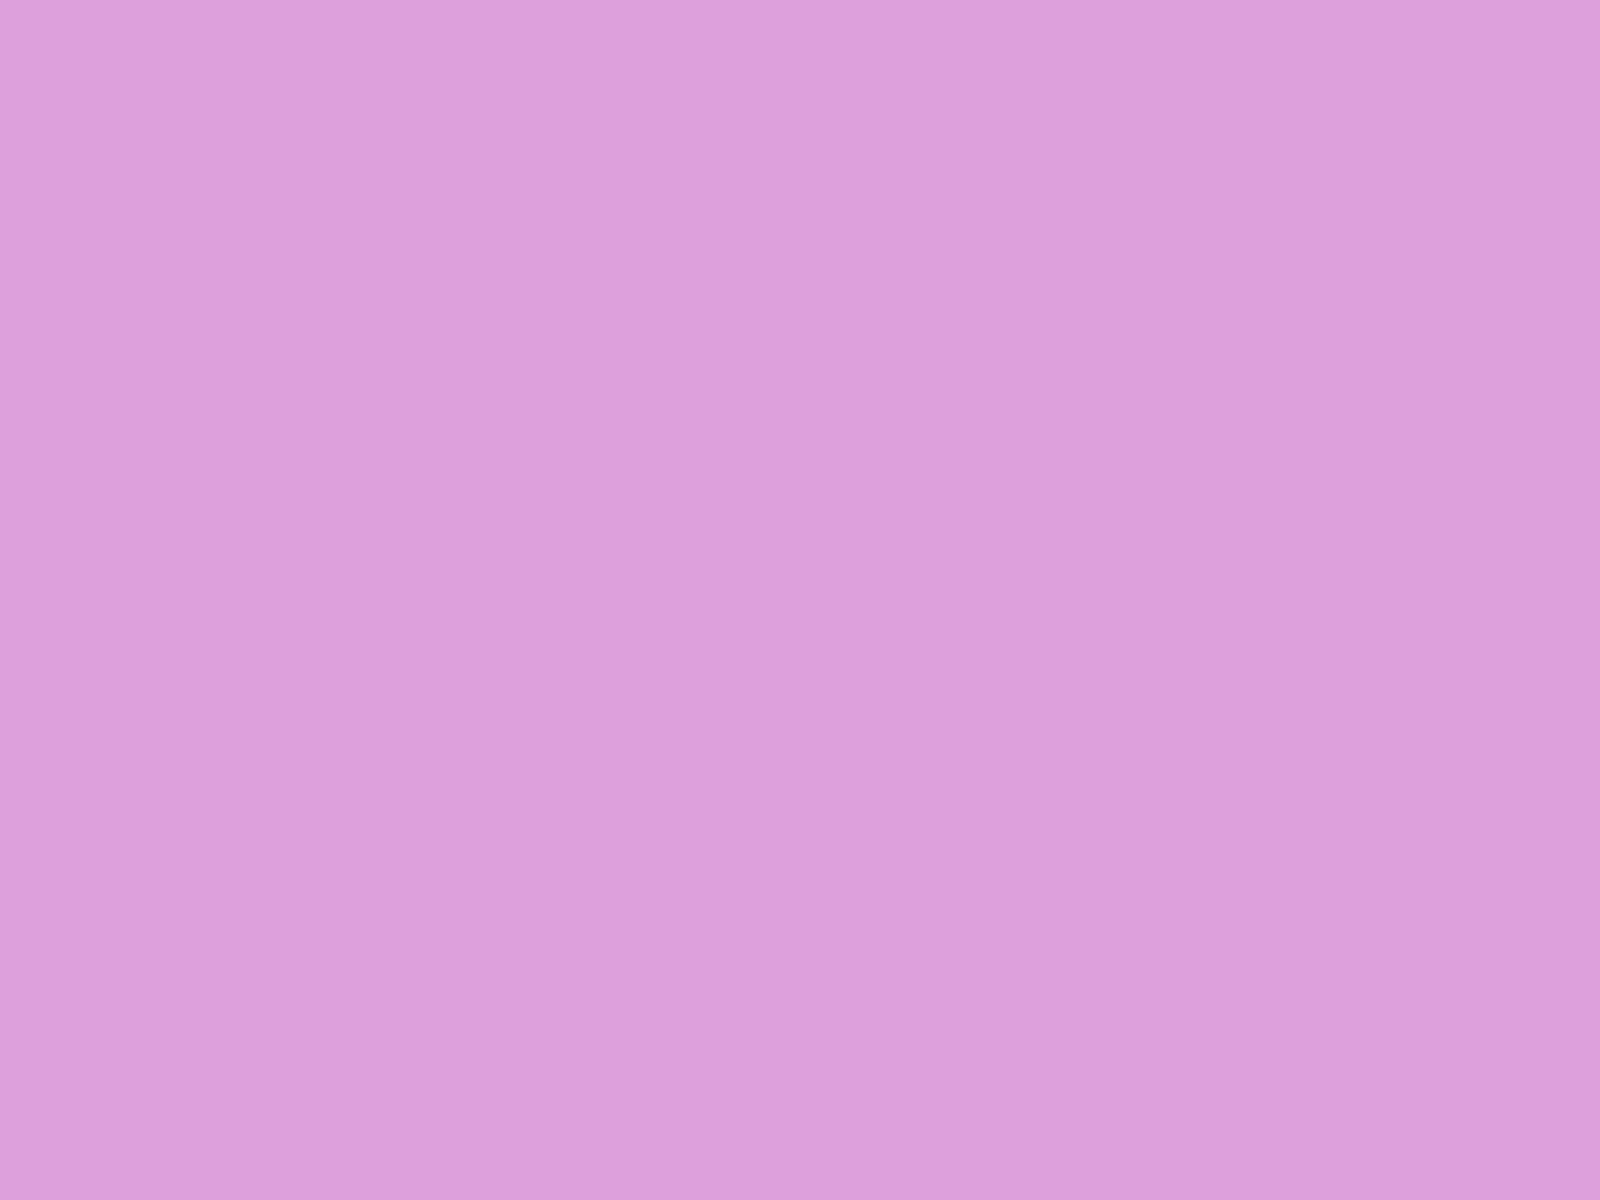 1600x1200 Pale Plum Solid Color Background